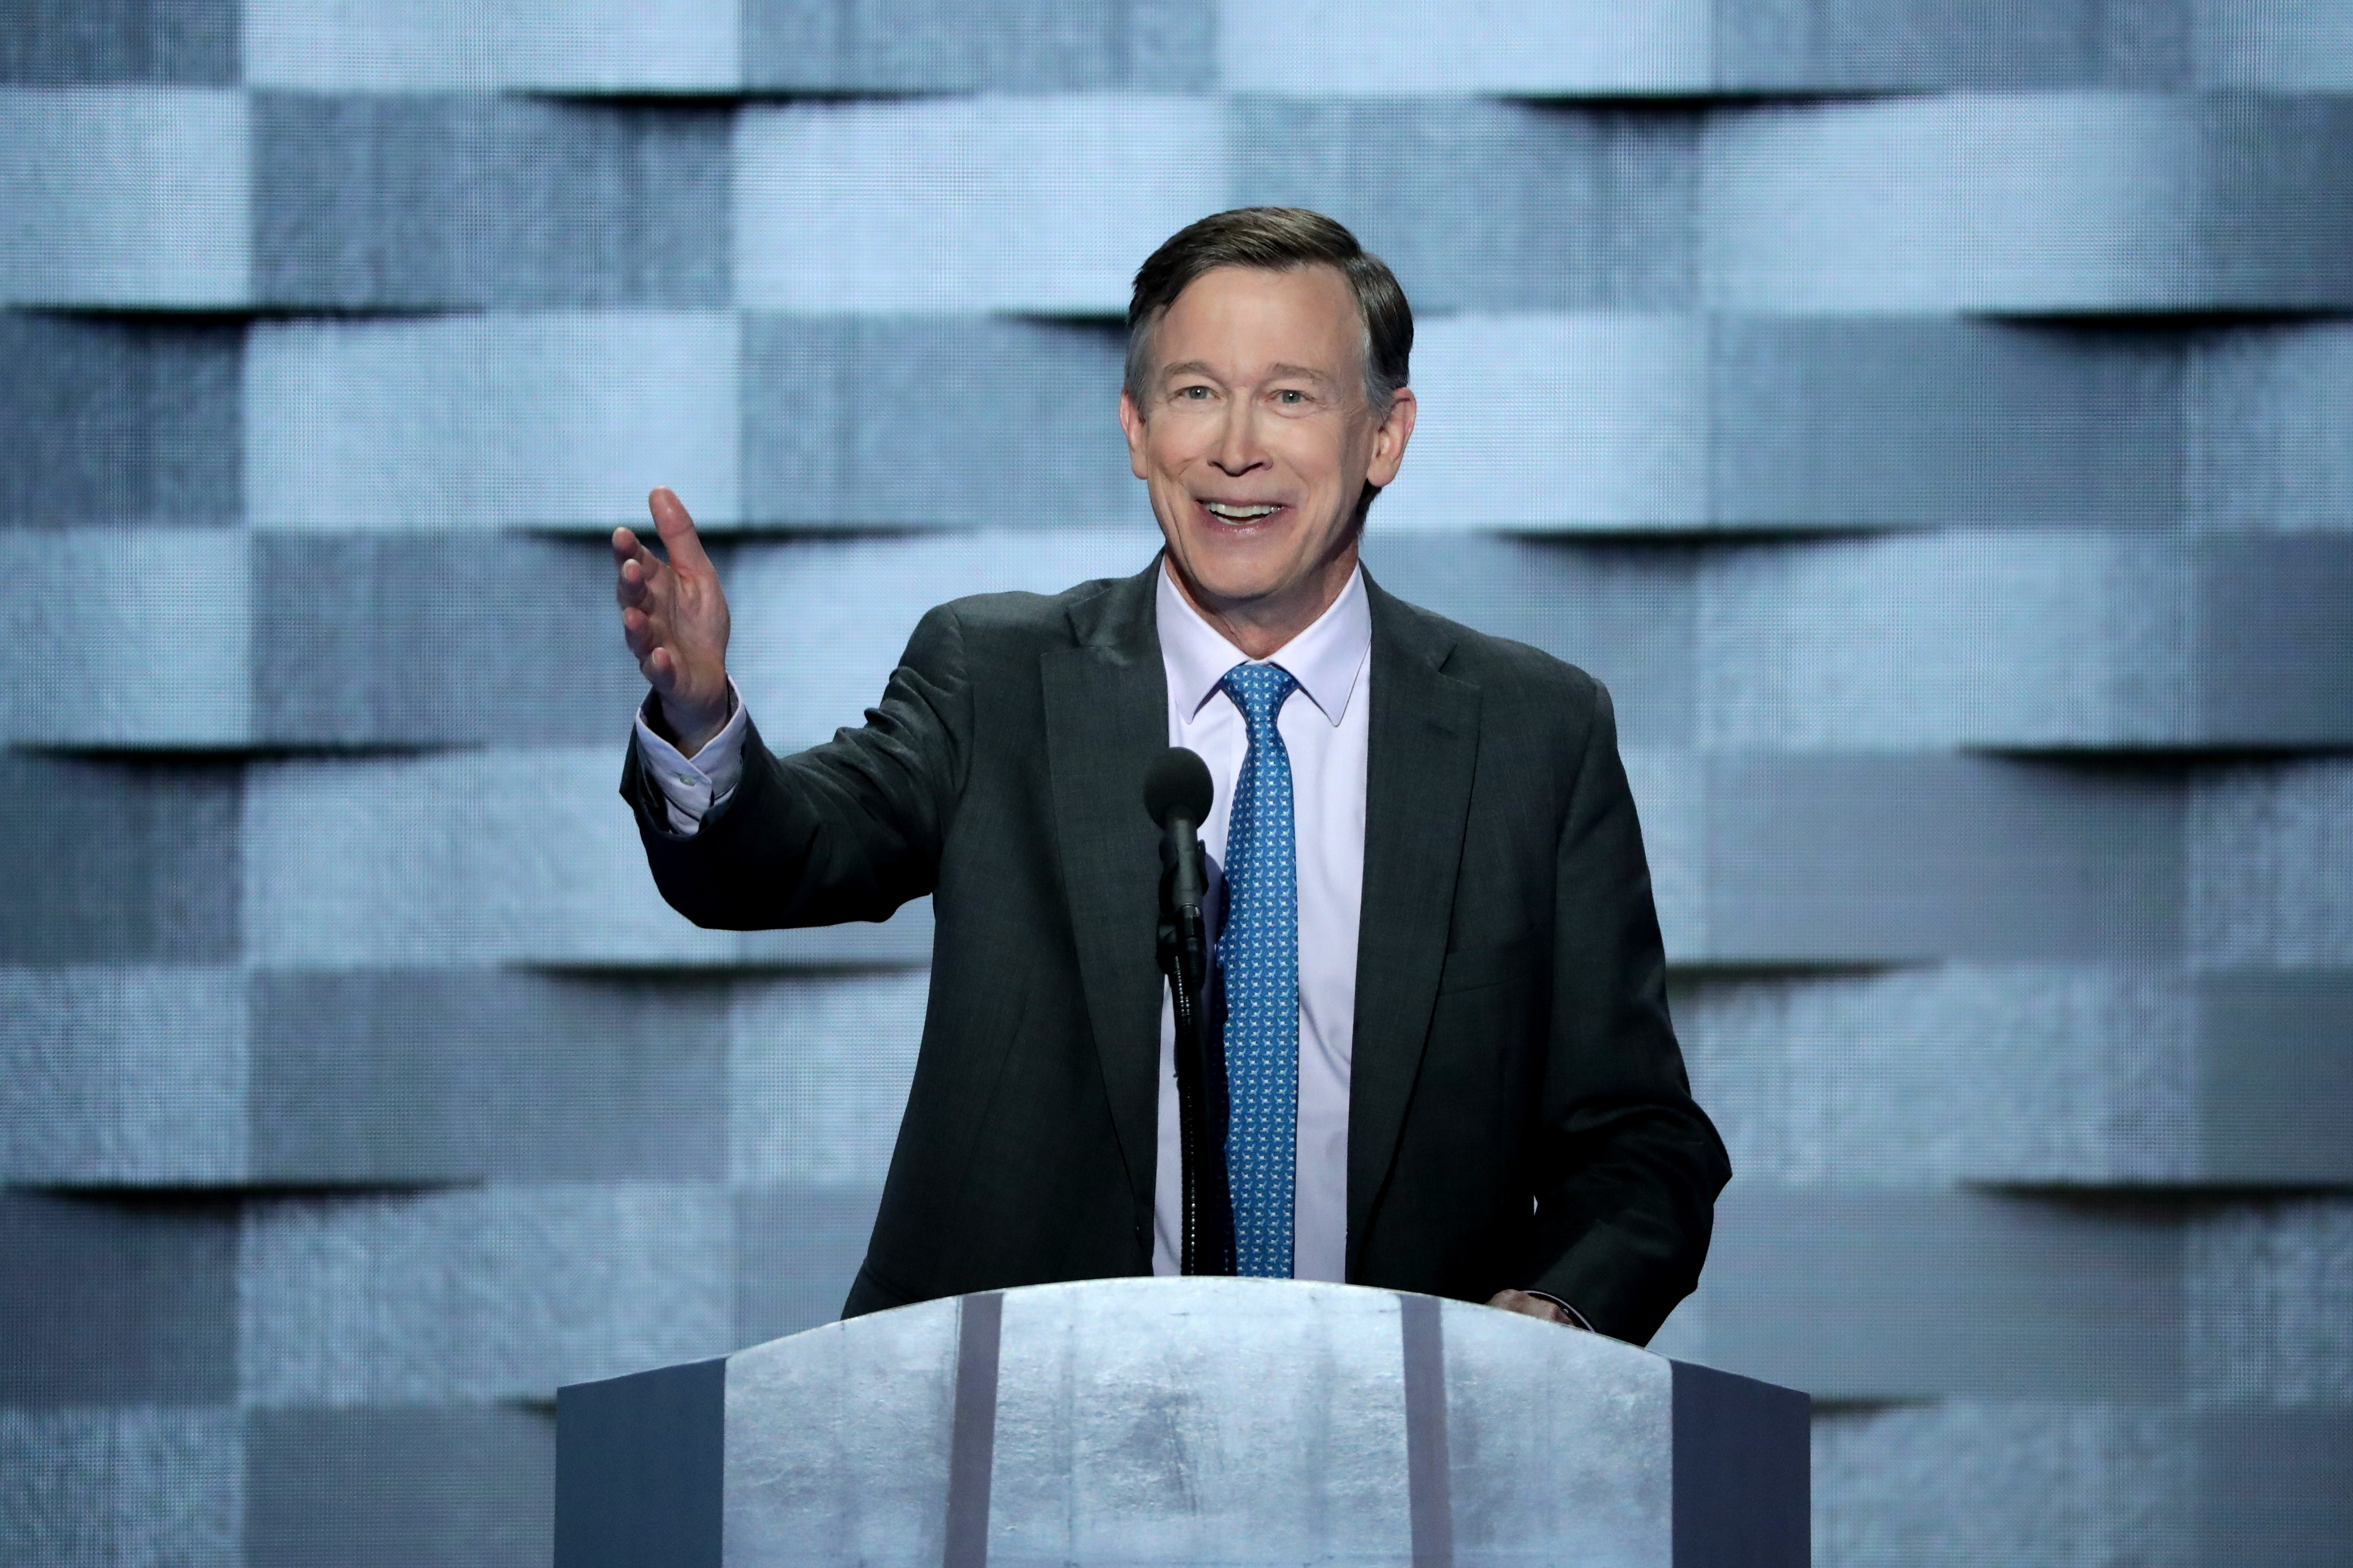 PHILADELPHIA, PA - JULY 28: Colorado Governor John Hickenlooper (D-CO) delivers remarks on the fourth day of the Democratic National Convention at the Wells Fargo Center, July 28, 2016 in Philadelphia, Pennsylvania. Democratic presidential candidate Hillary Clinton received the number of votes needed to secure the party's nomination. An estimated 50,000 people are expected in Philadelphia, including hundreds of protesters and members of the media. The four-day Democratic National Convention kicked off July 25. (Photo by Alex Wong/Getty Images)